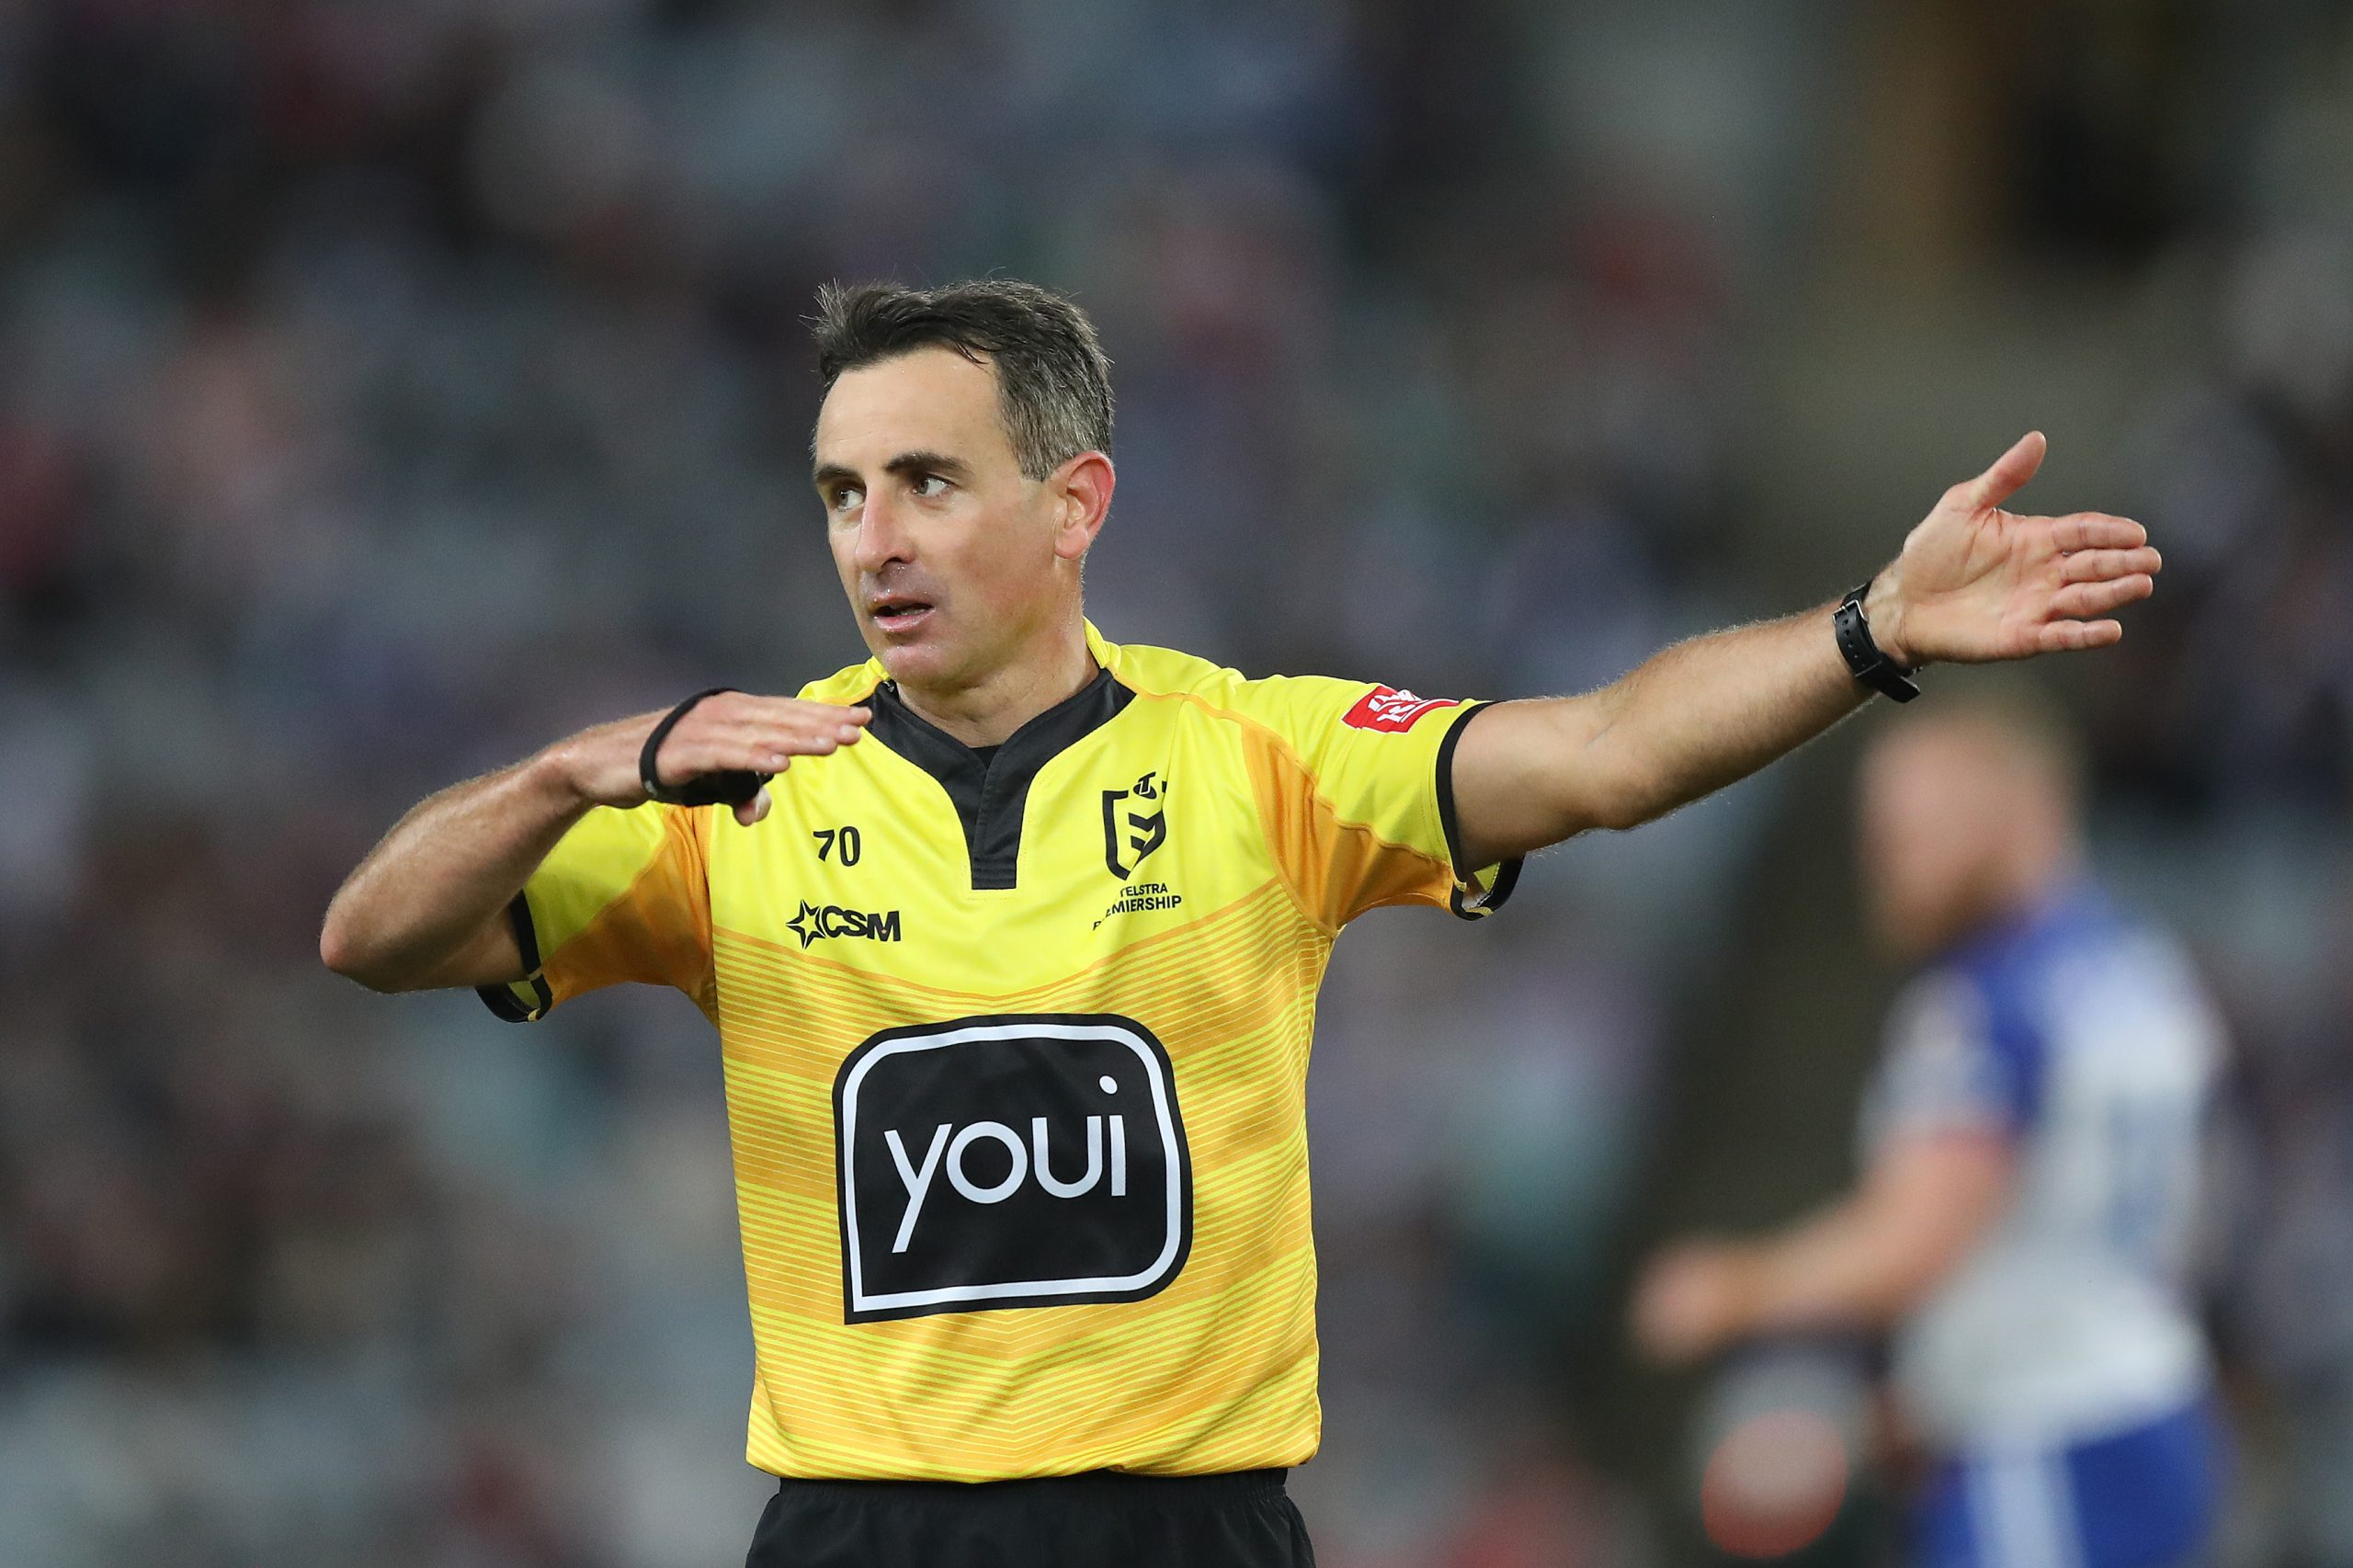 Gerard Sutton named to referee his seventh NRL Grand Final